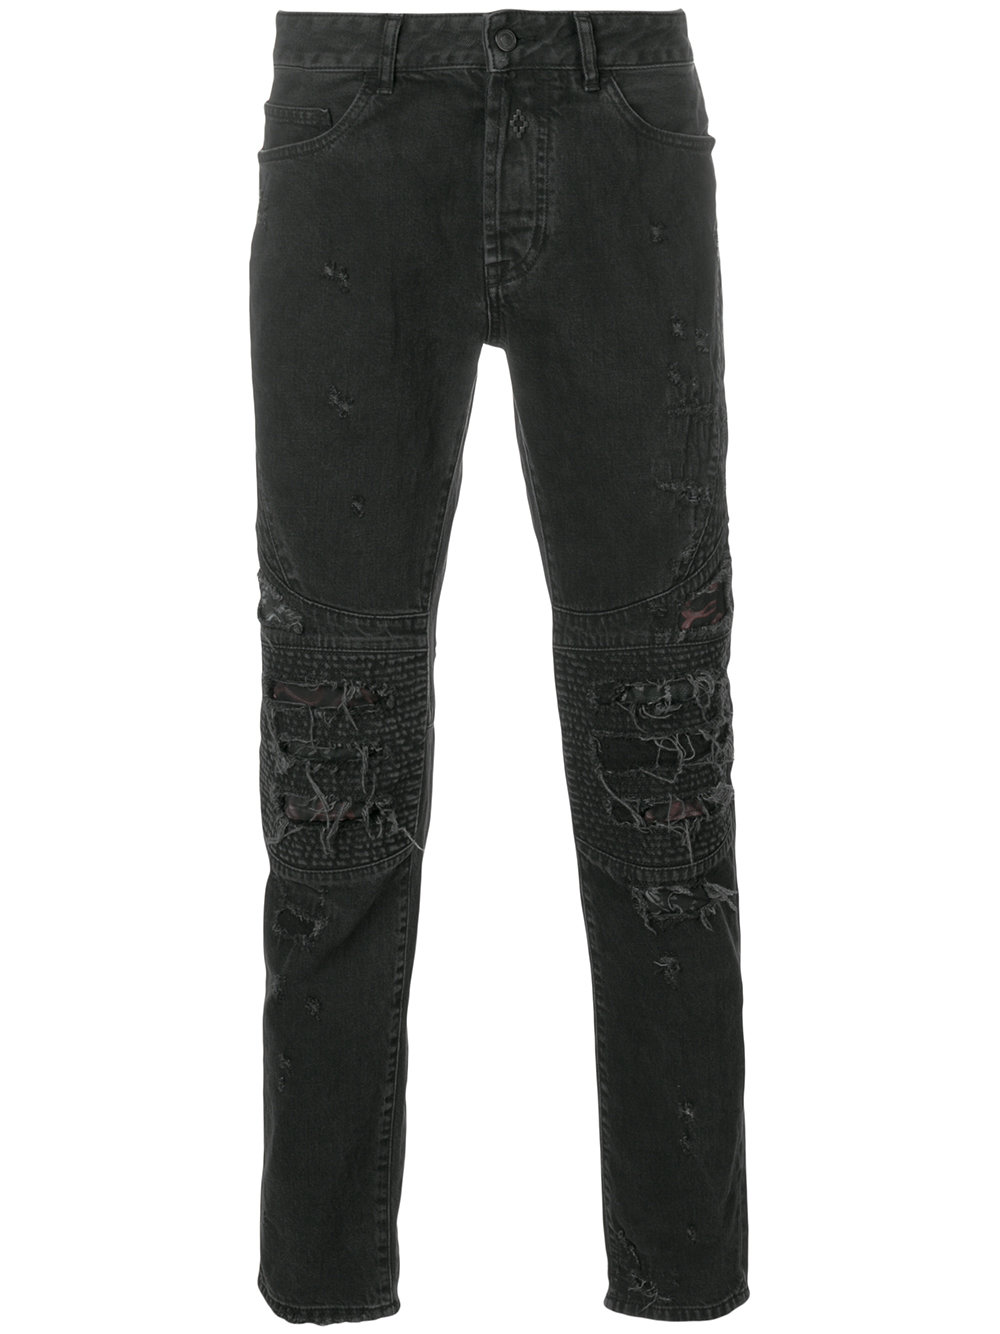 Marcelo Burlon Man BLACK SNAKE BIKER FIT JEANS STRONG WASH